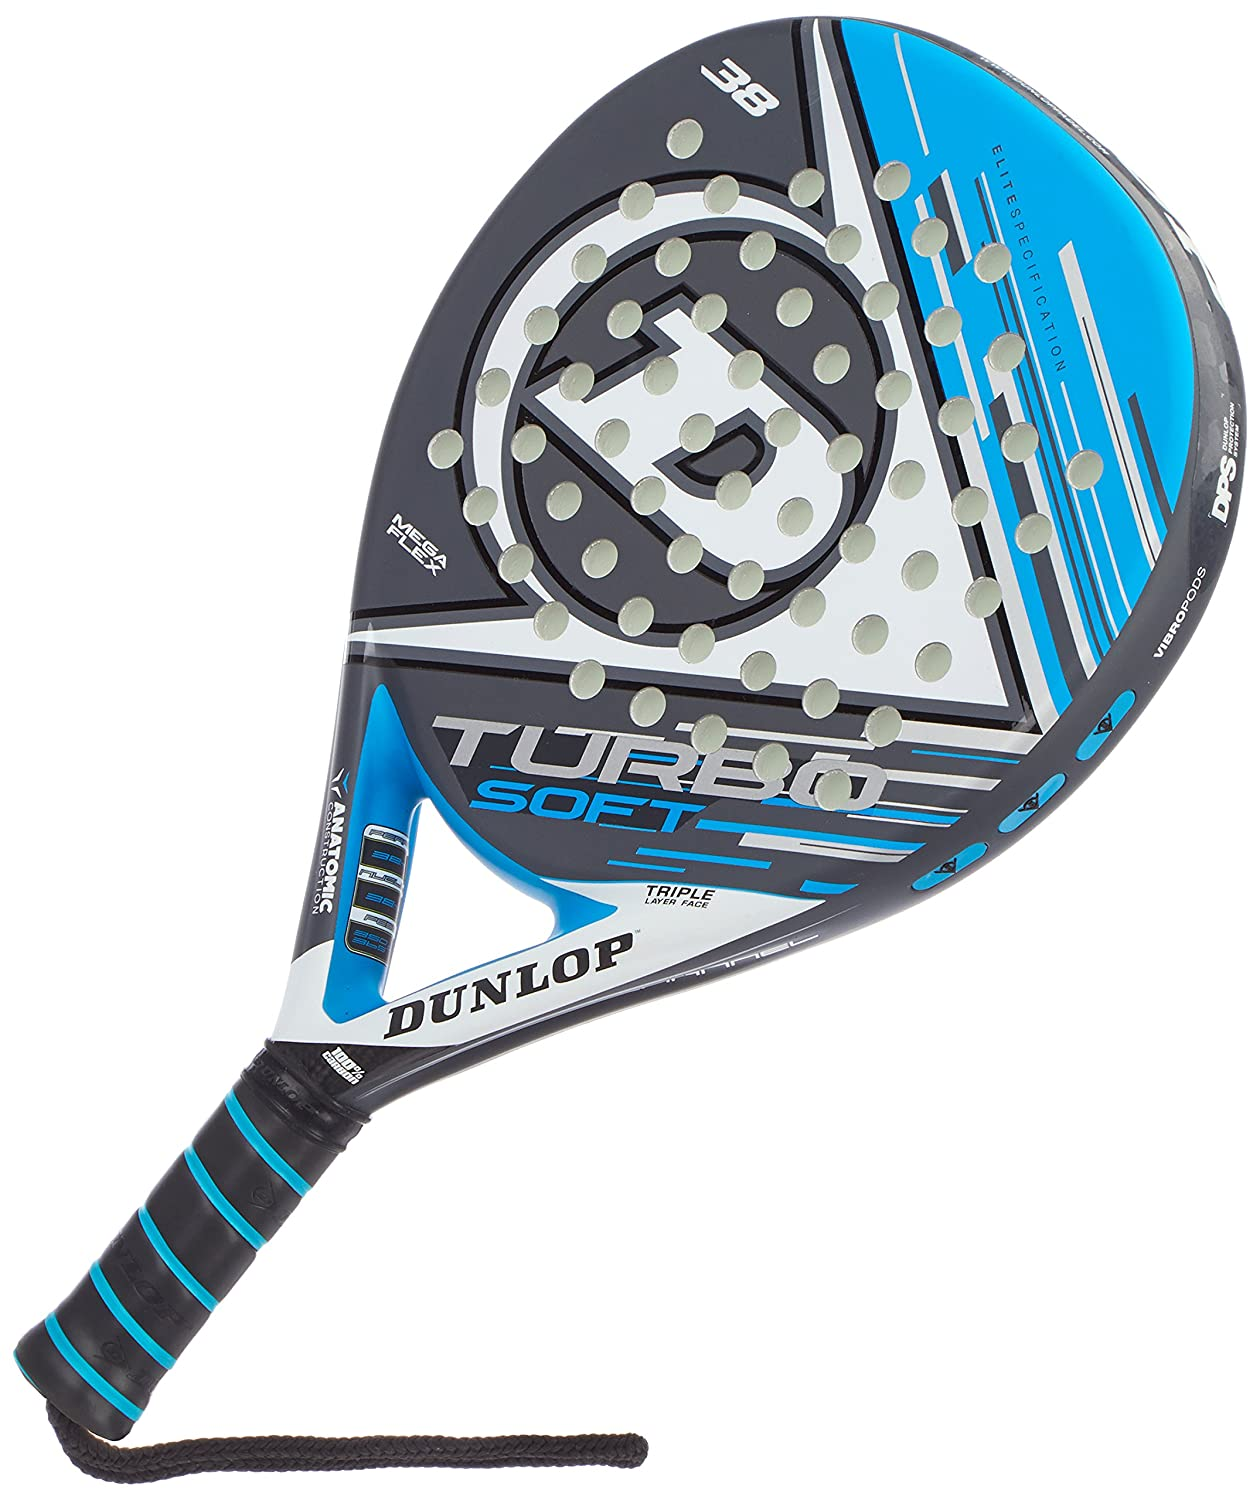 Dunlop TURBO SOFT - Pala de pádel 38mm, 2017, nivel avanzado ...